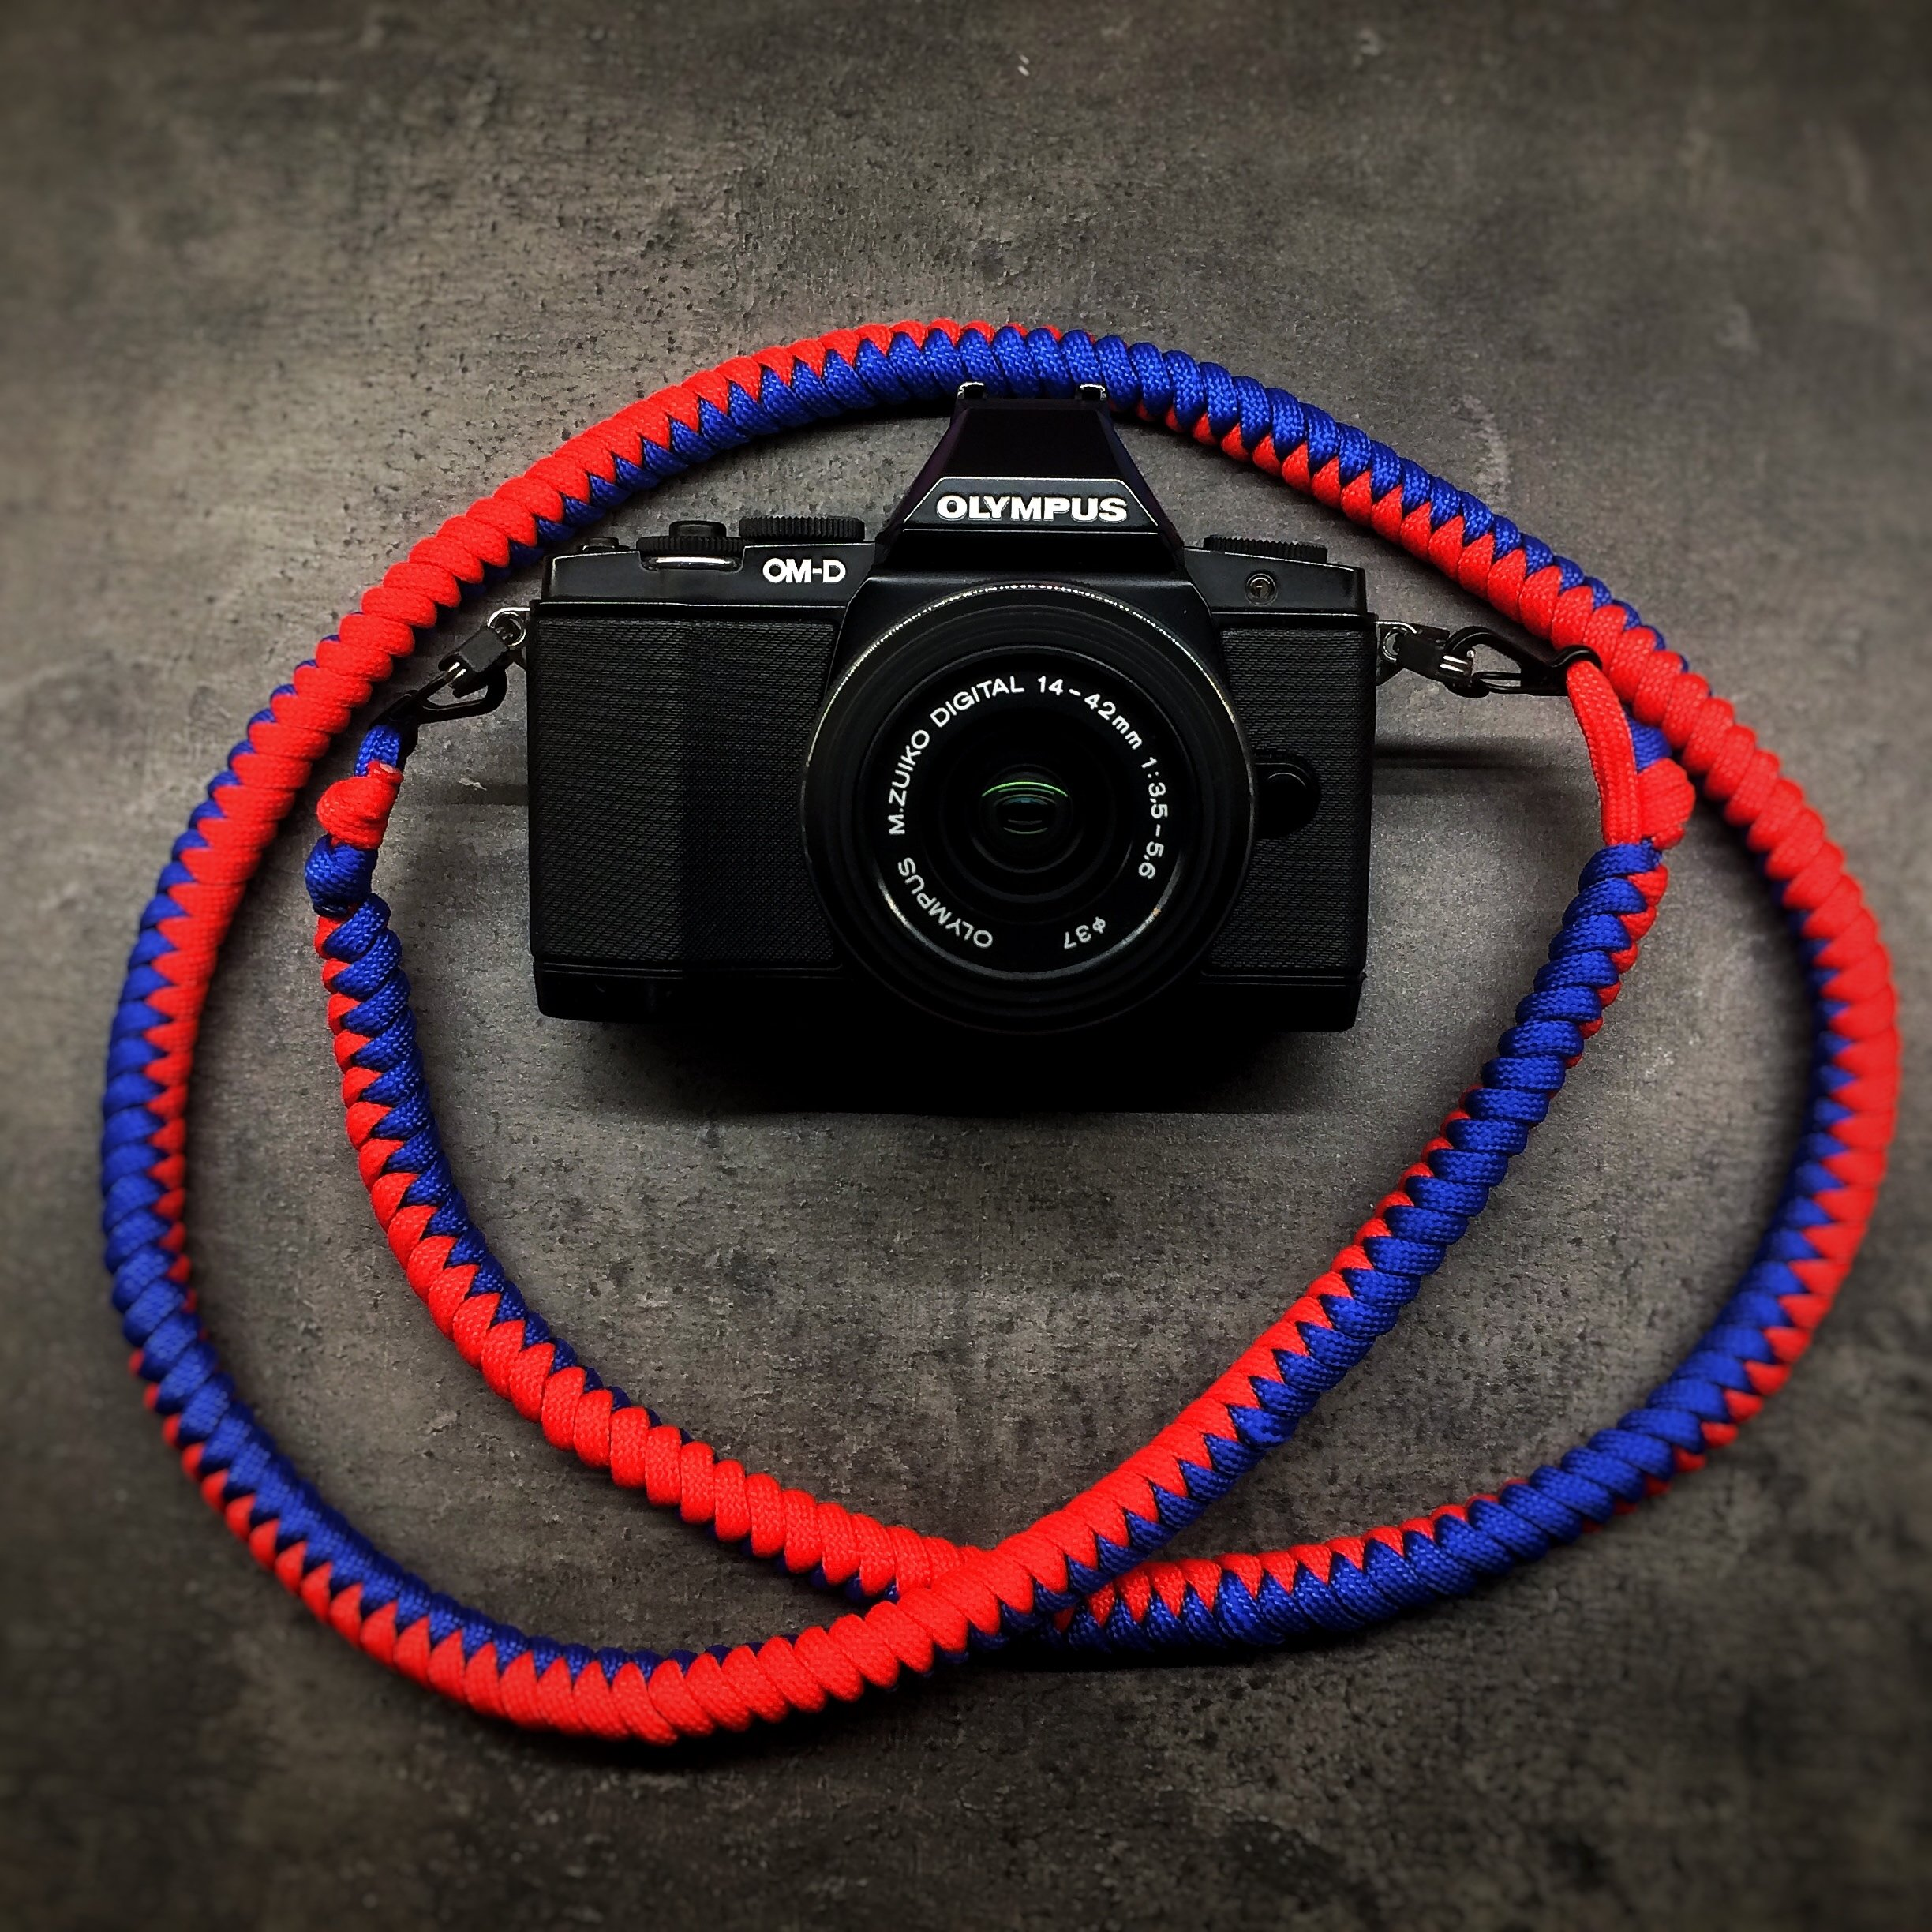 Camera Neck Strap - Blue/Red a.k.a. Tivoli 0002